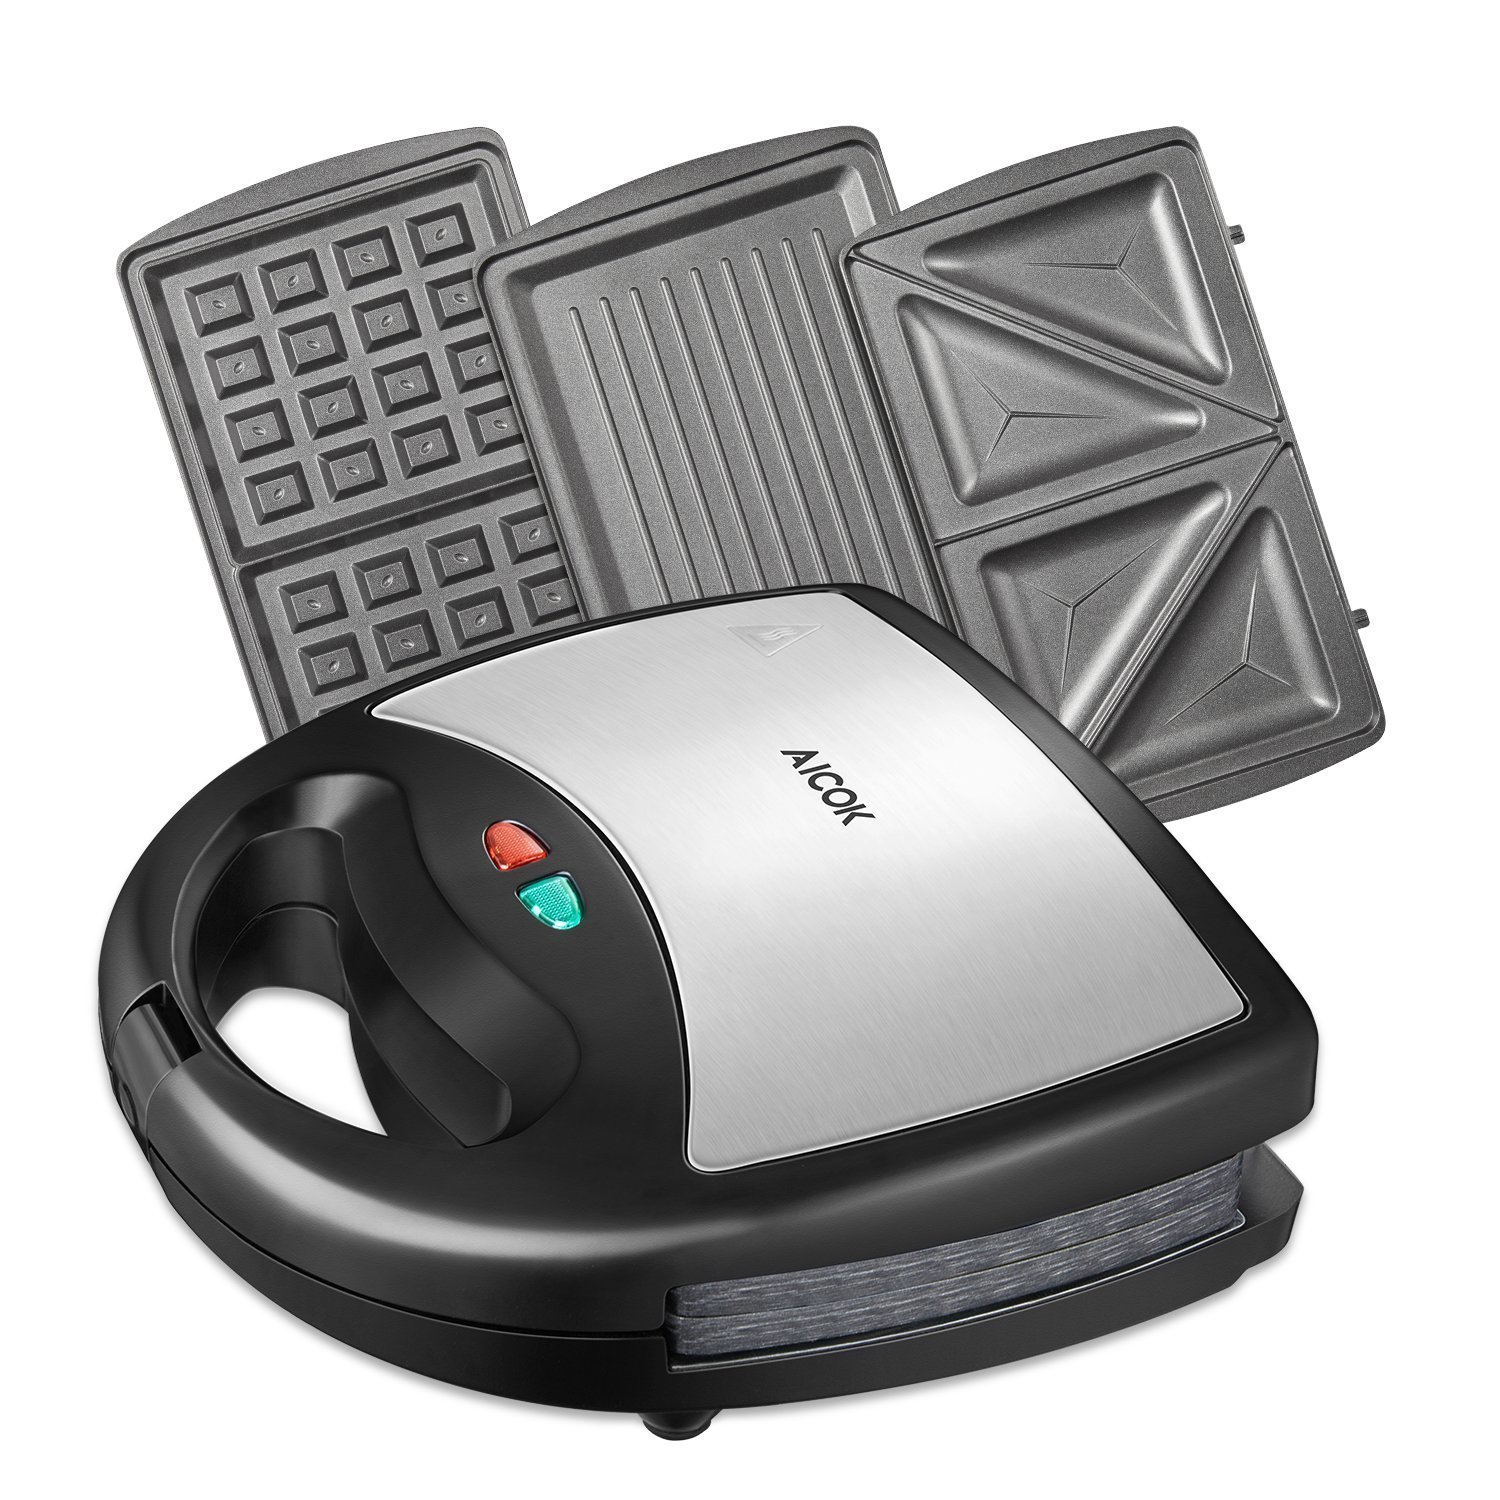 Aicok Sandwich Maker, Waffle maker, Sandwich toaster, 750-Watts, 3-in-1 Detachable Non-stick Coating, LED Indicator Lights, Black ST-08